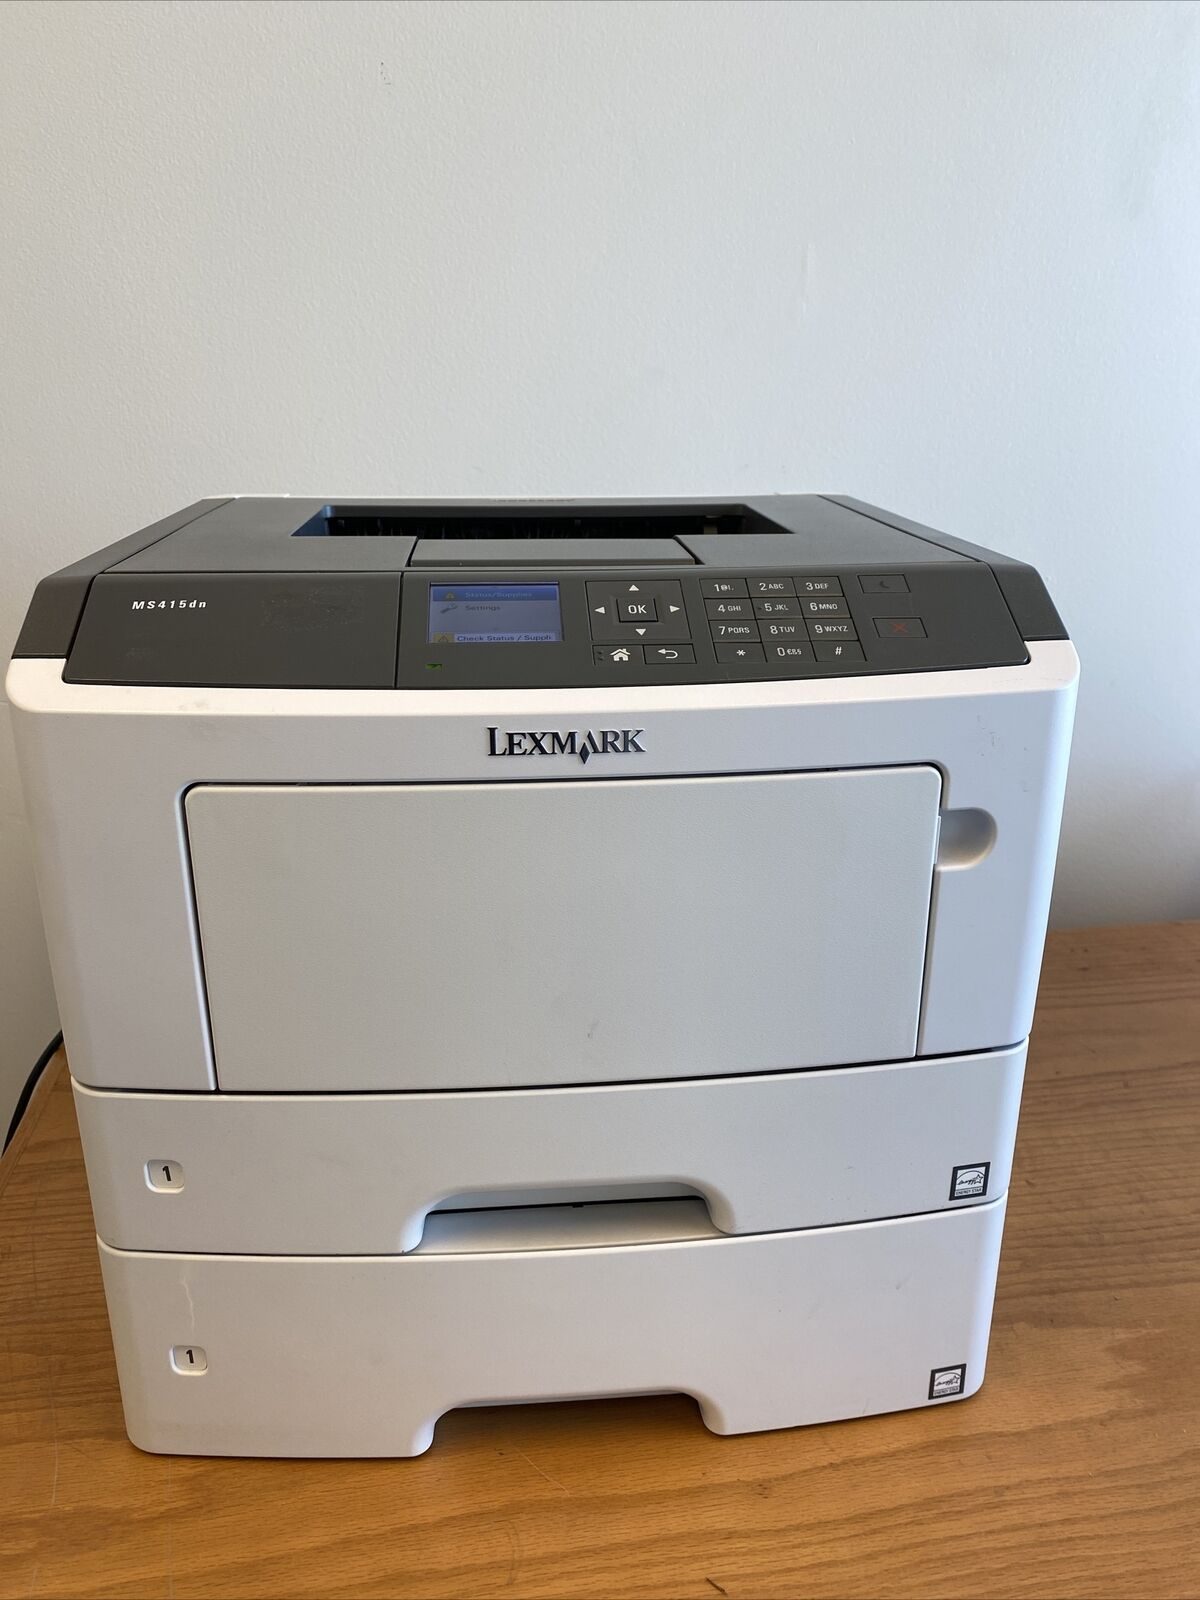 Refurbished Lexmark MS415DN laser printer w/dual trays Legal, Letter Network,USB. Buy it now for 249.99